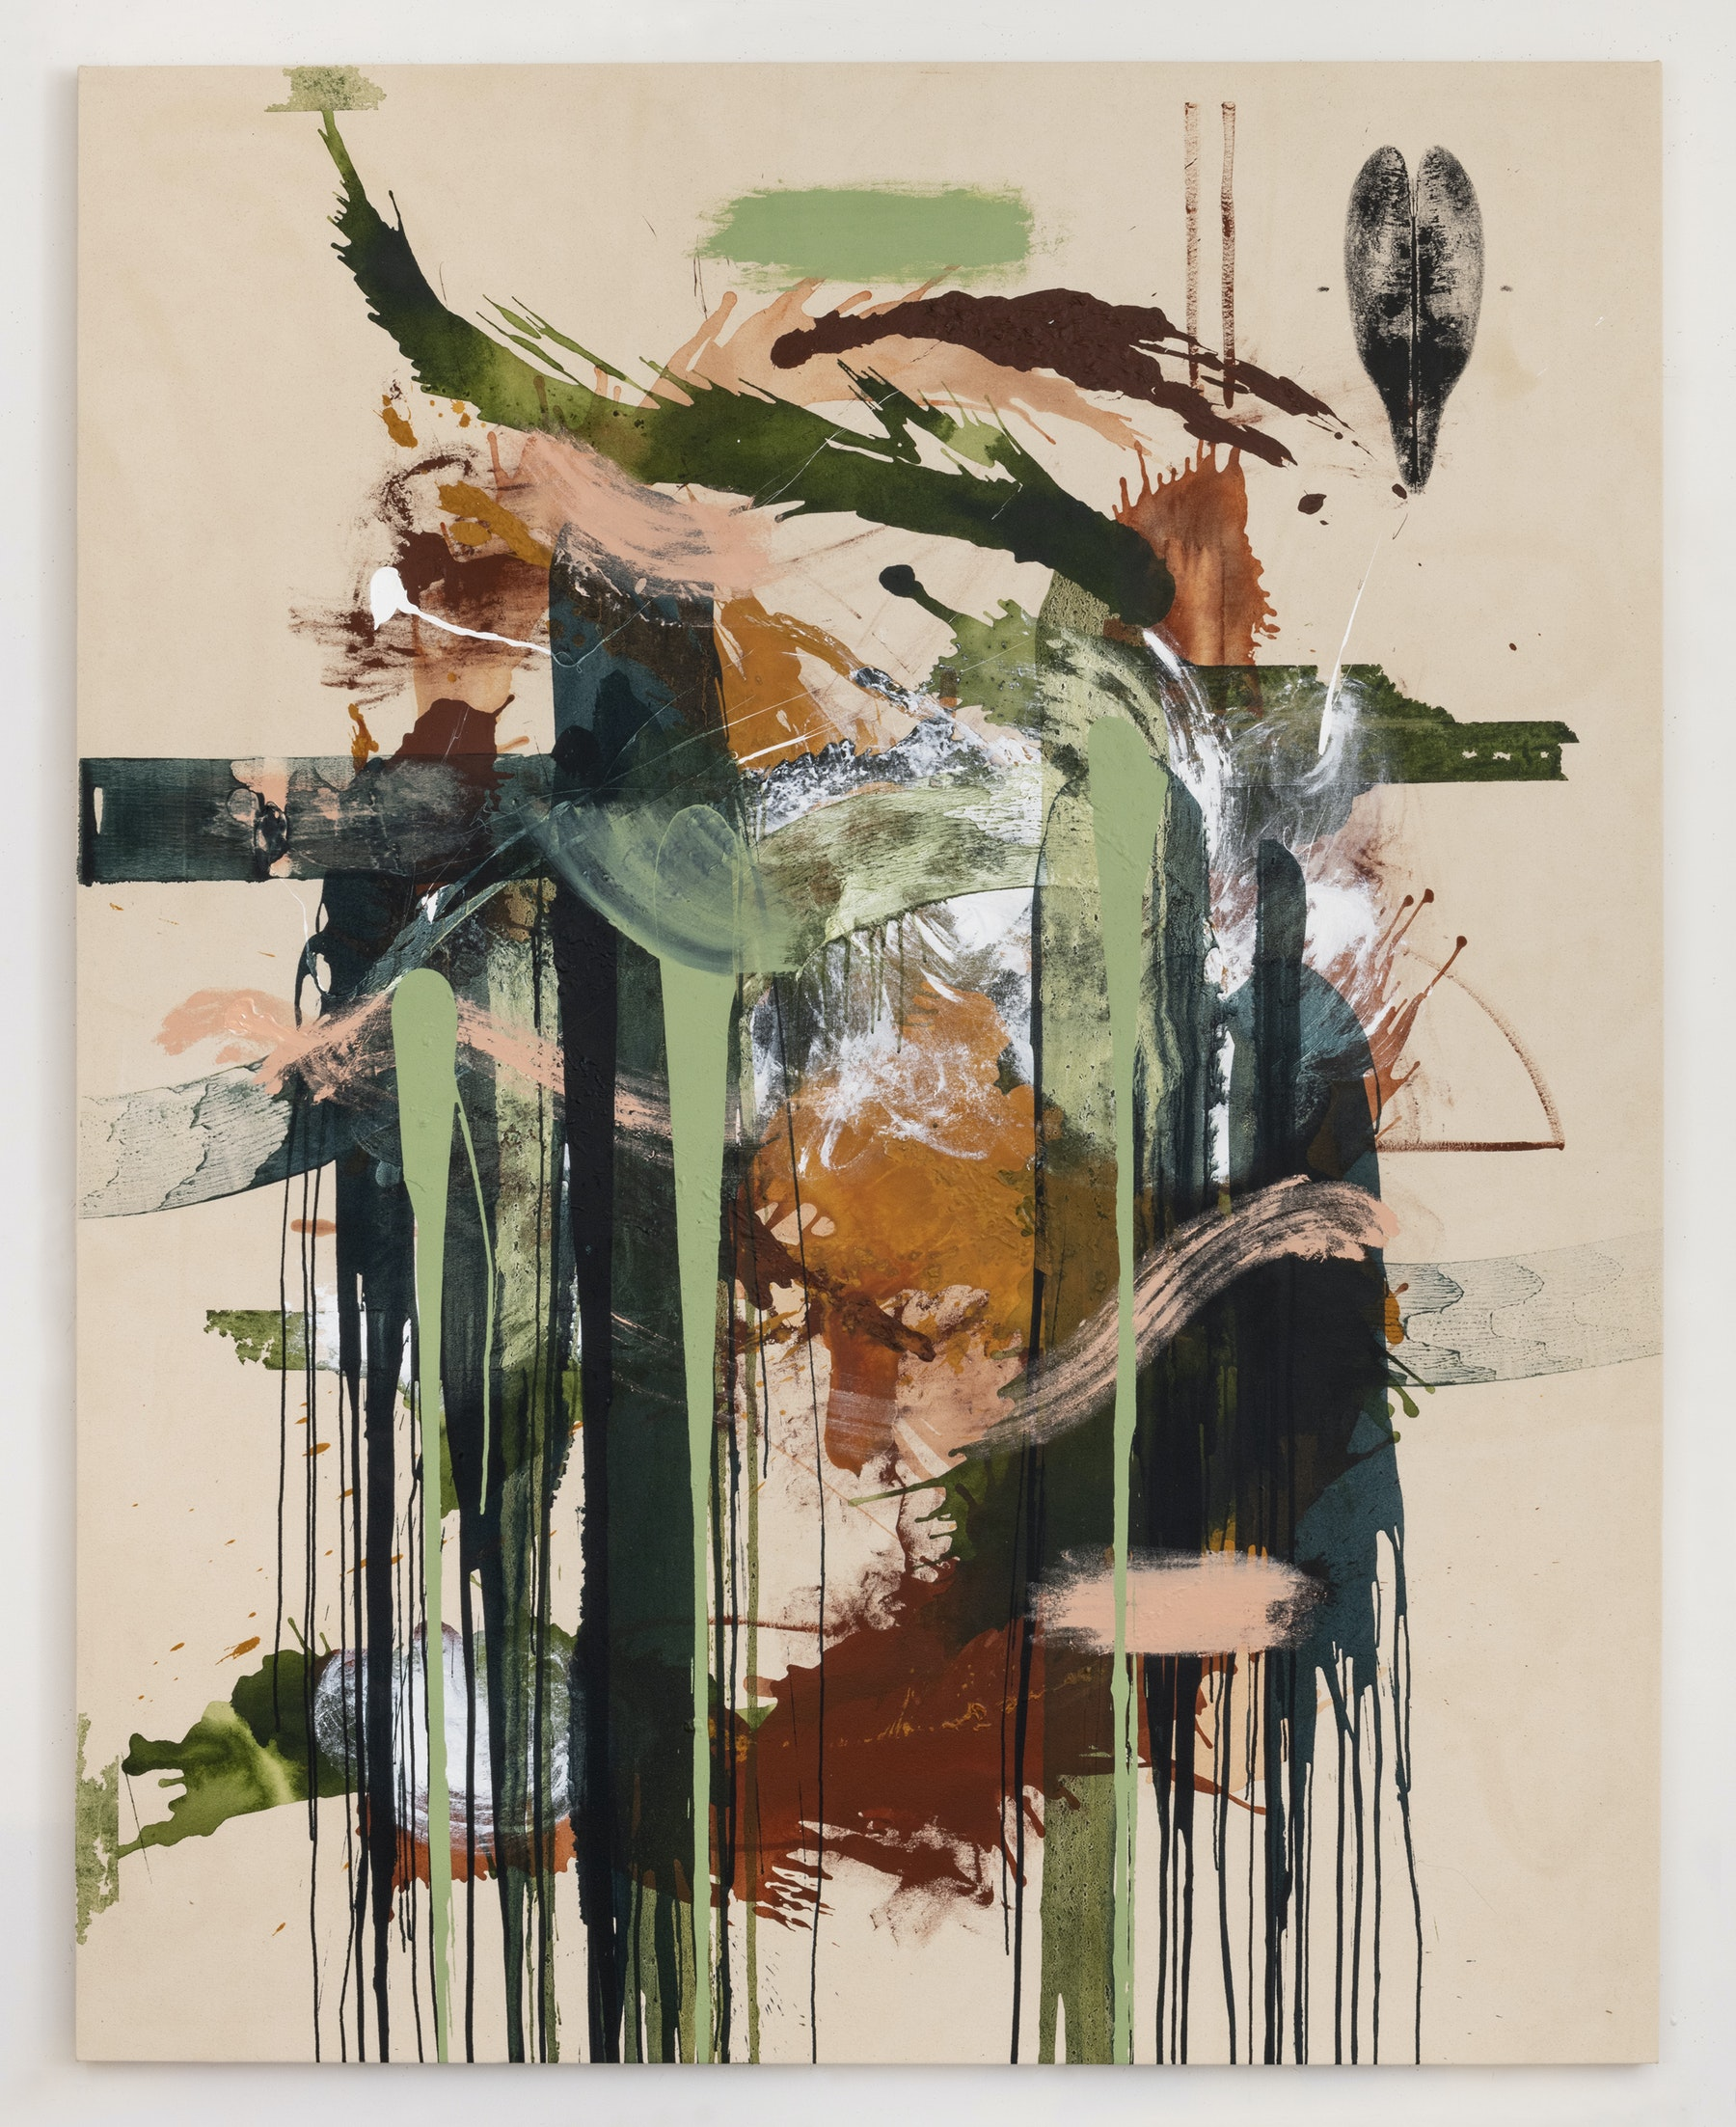 """Elizabeth Neel """"Life in Halves 1,"""" 2019 Acrylic on canvas 97 x 77"""" [HxW] (246.38 x 195.58 cm) Inventory #NEE234 Courtesy of the artist and Vielmetter Los Angeles Photocredit Adam Reich, NY"""